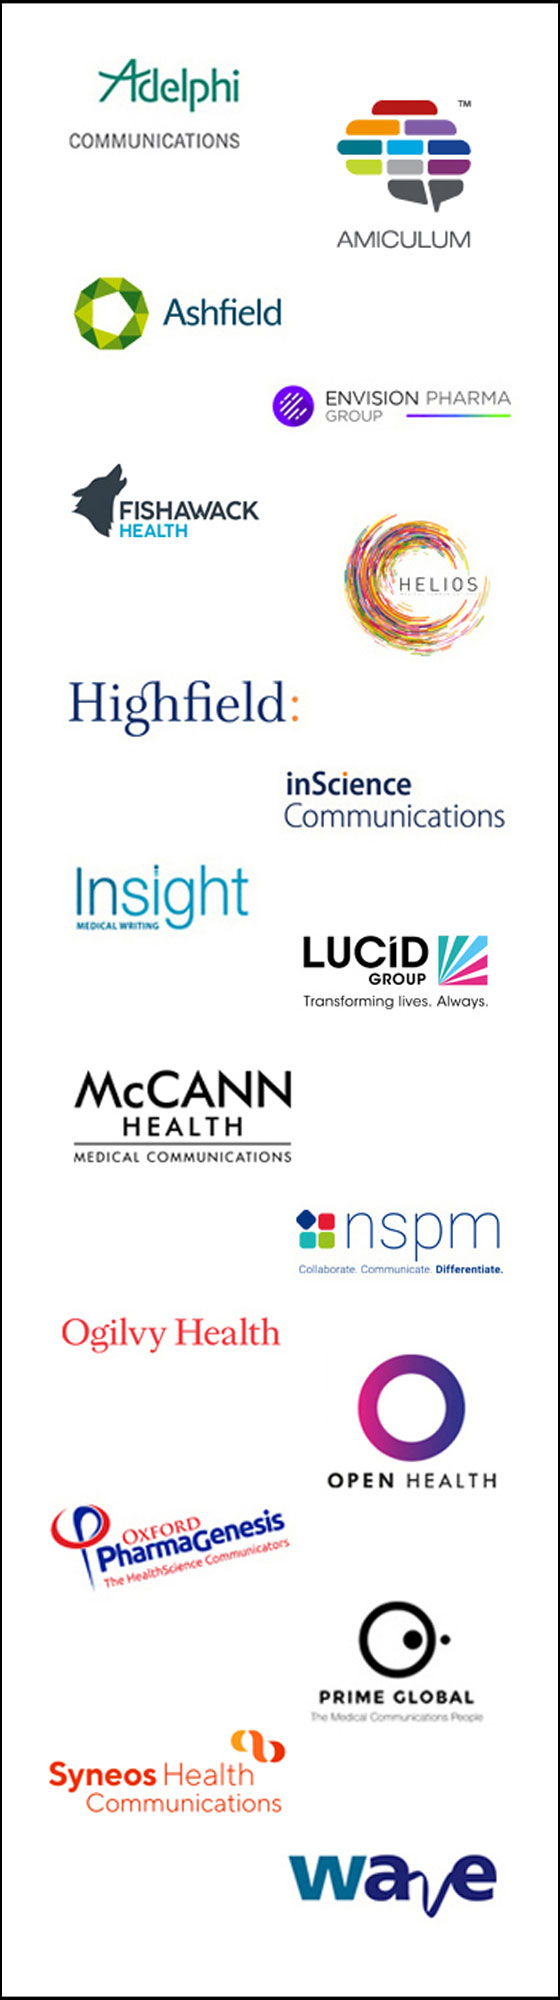 NetworkPharma.tv is supported by the MedComms Networking Sponsors